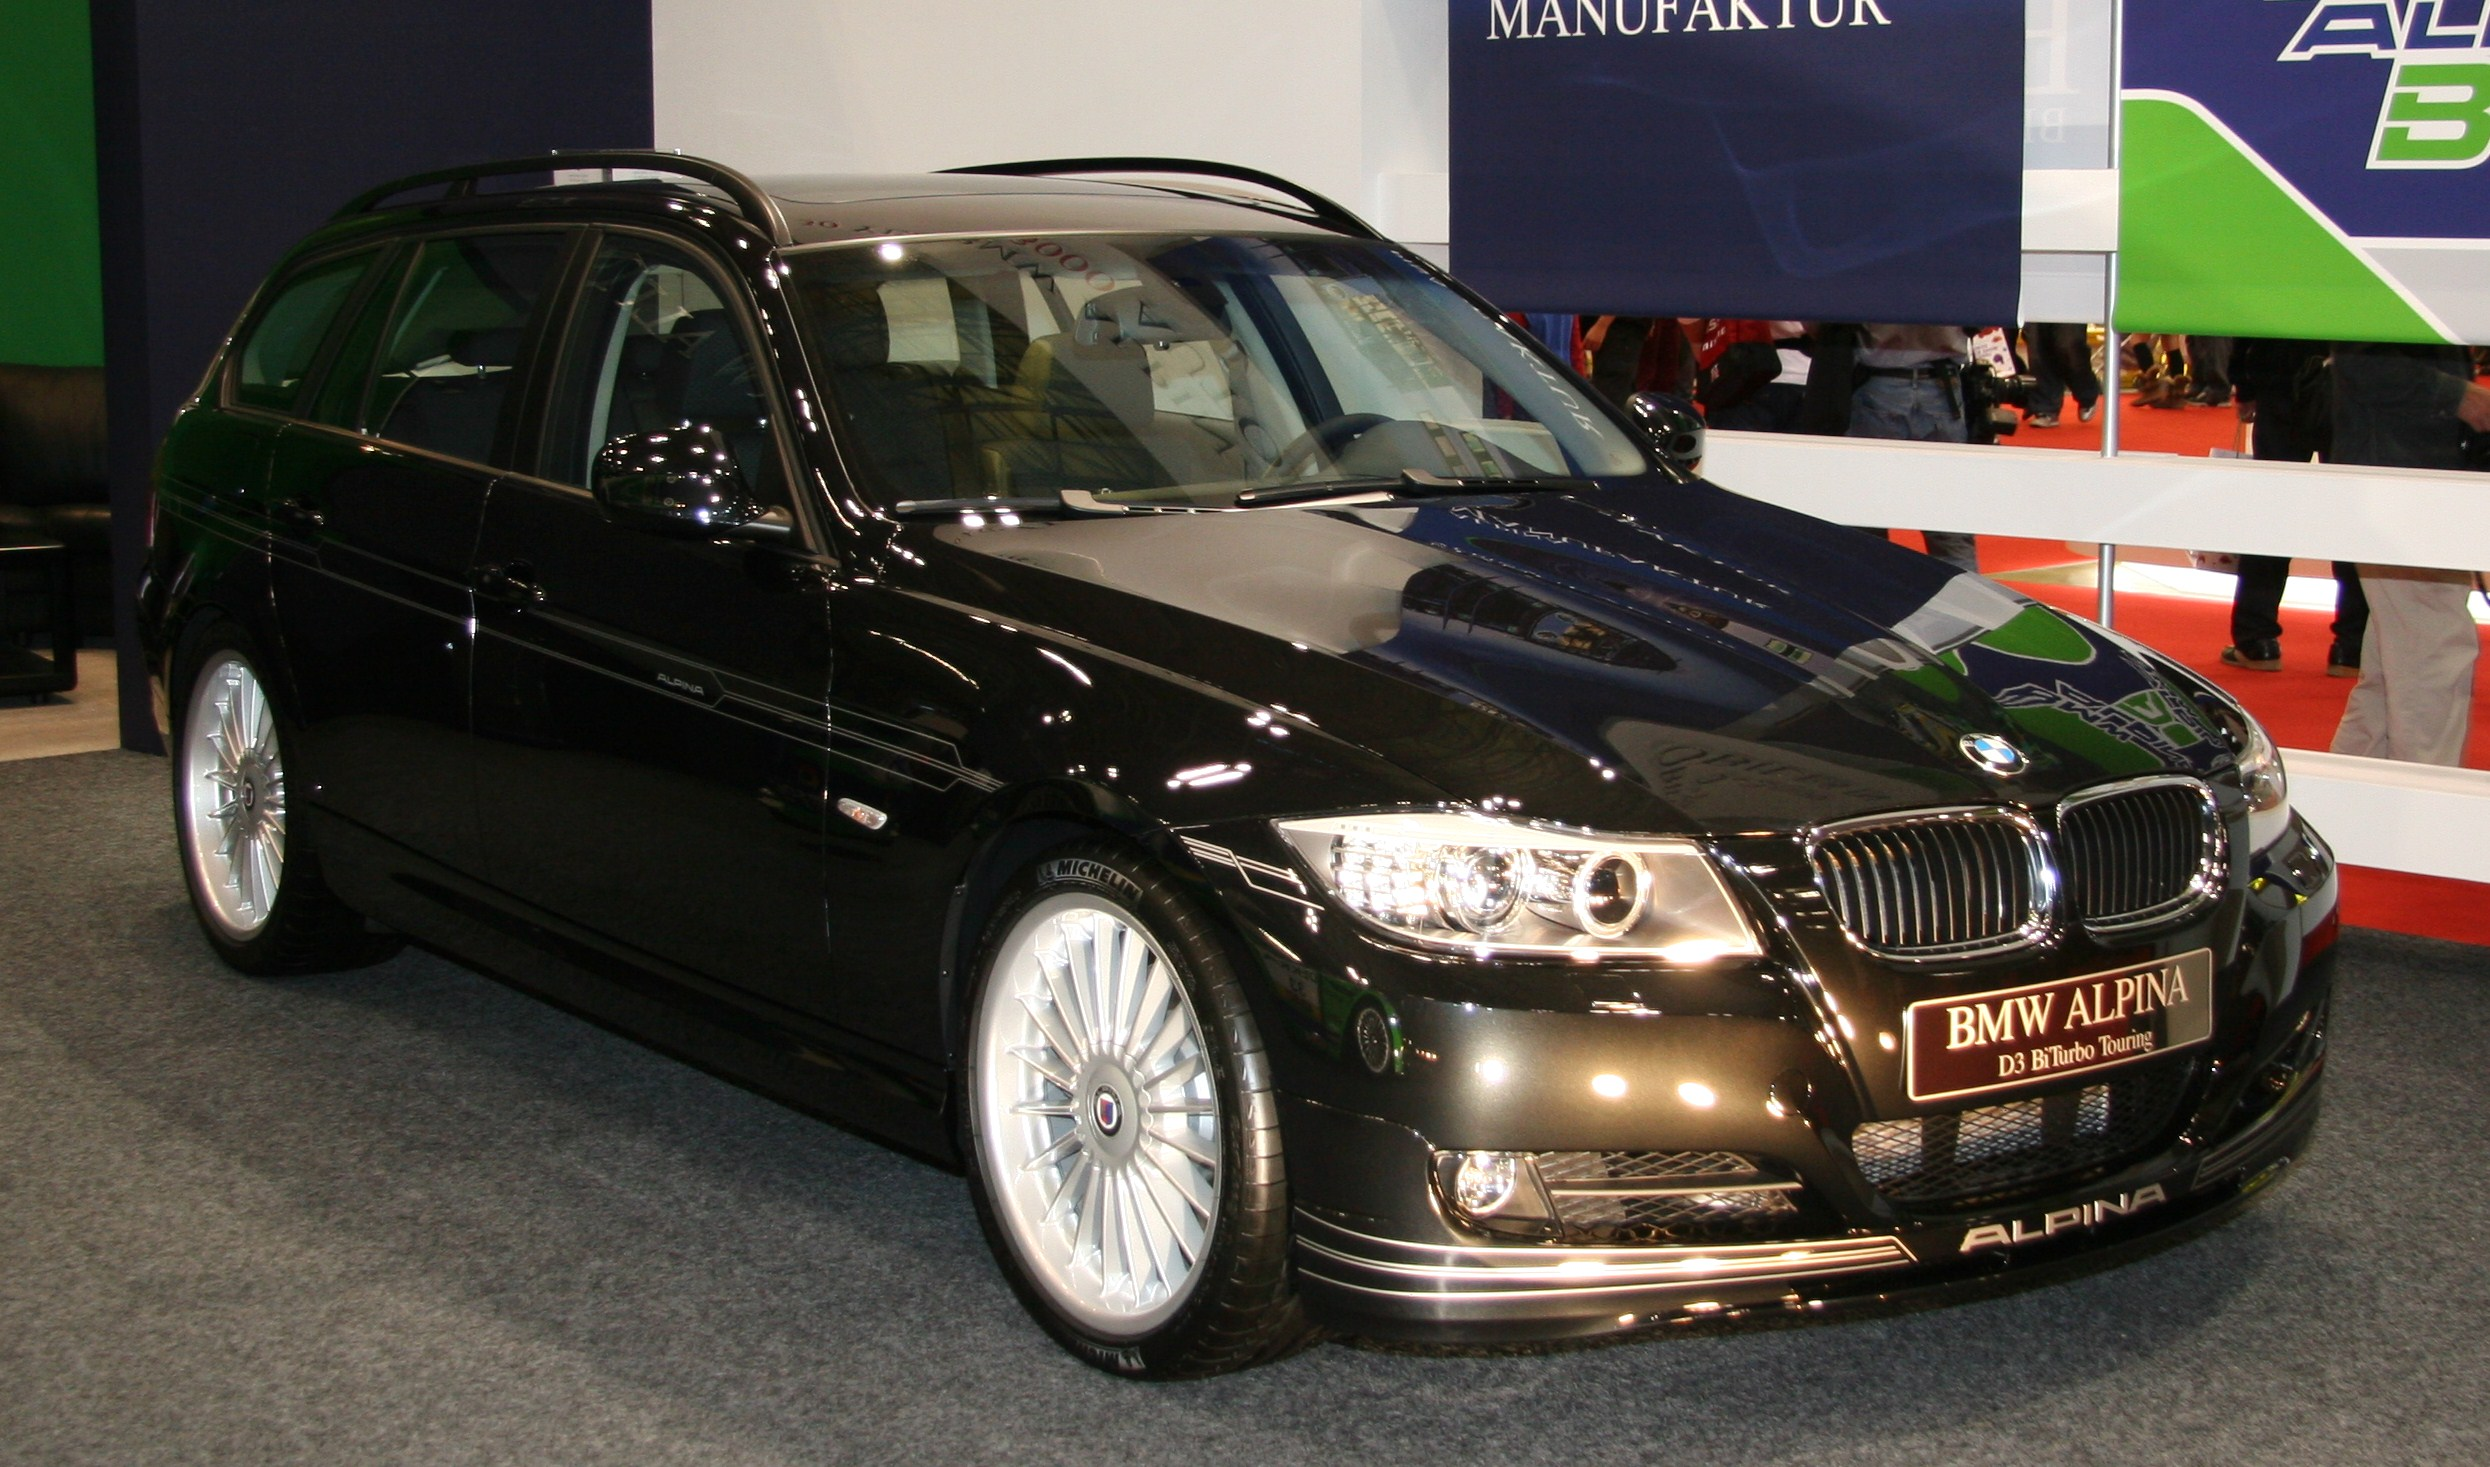 file bmw alpina d3 biturbo wikimedia commons. Black Bedroom Furniture Sets. Home Design Ideas